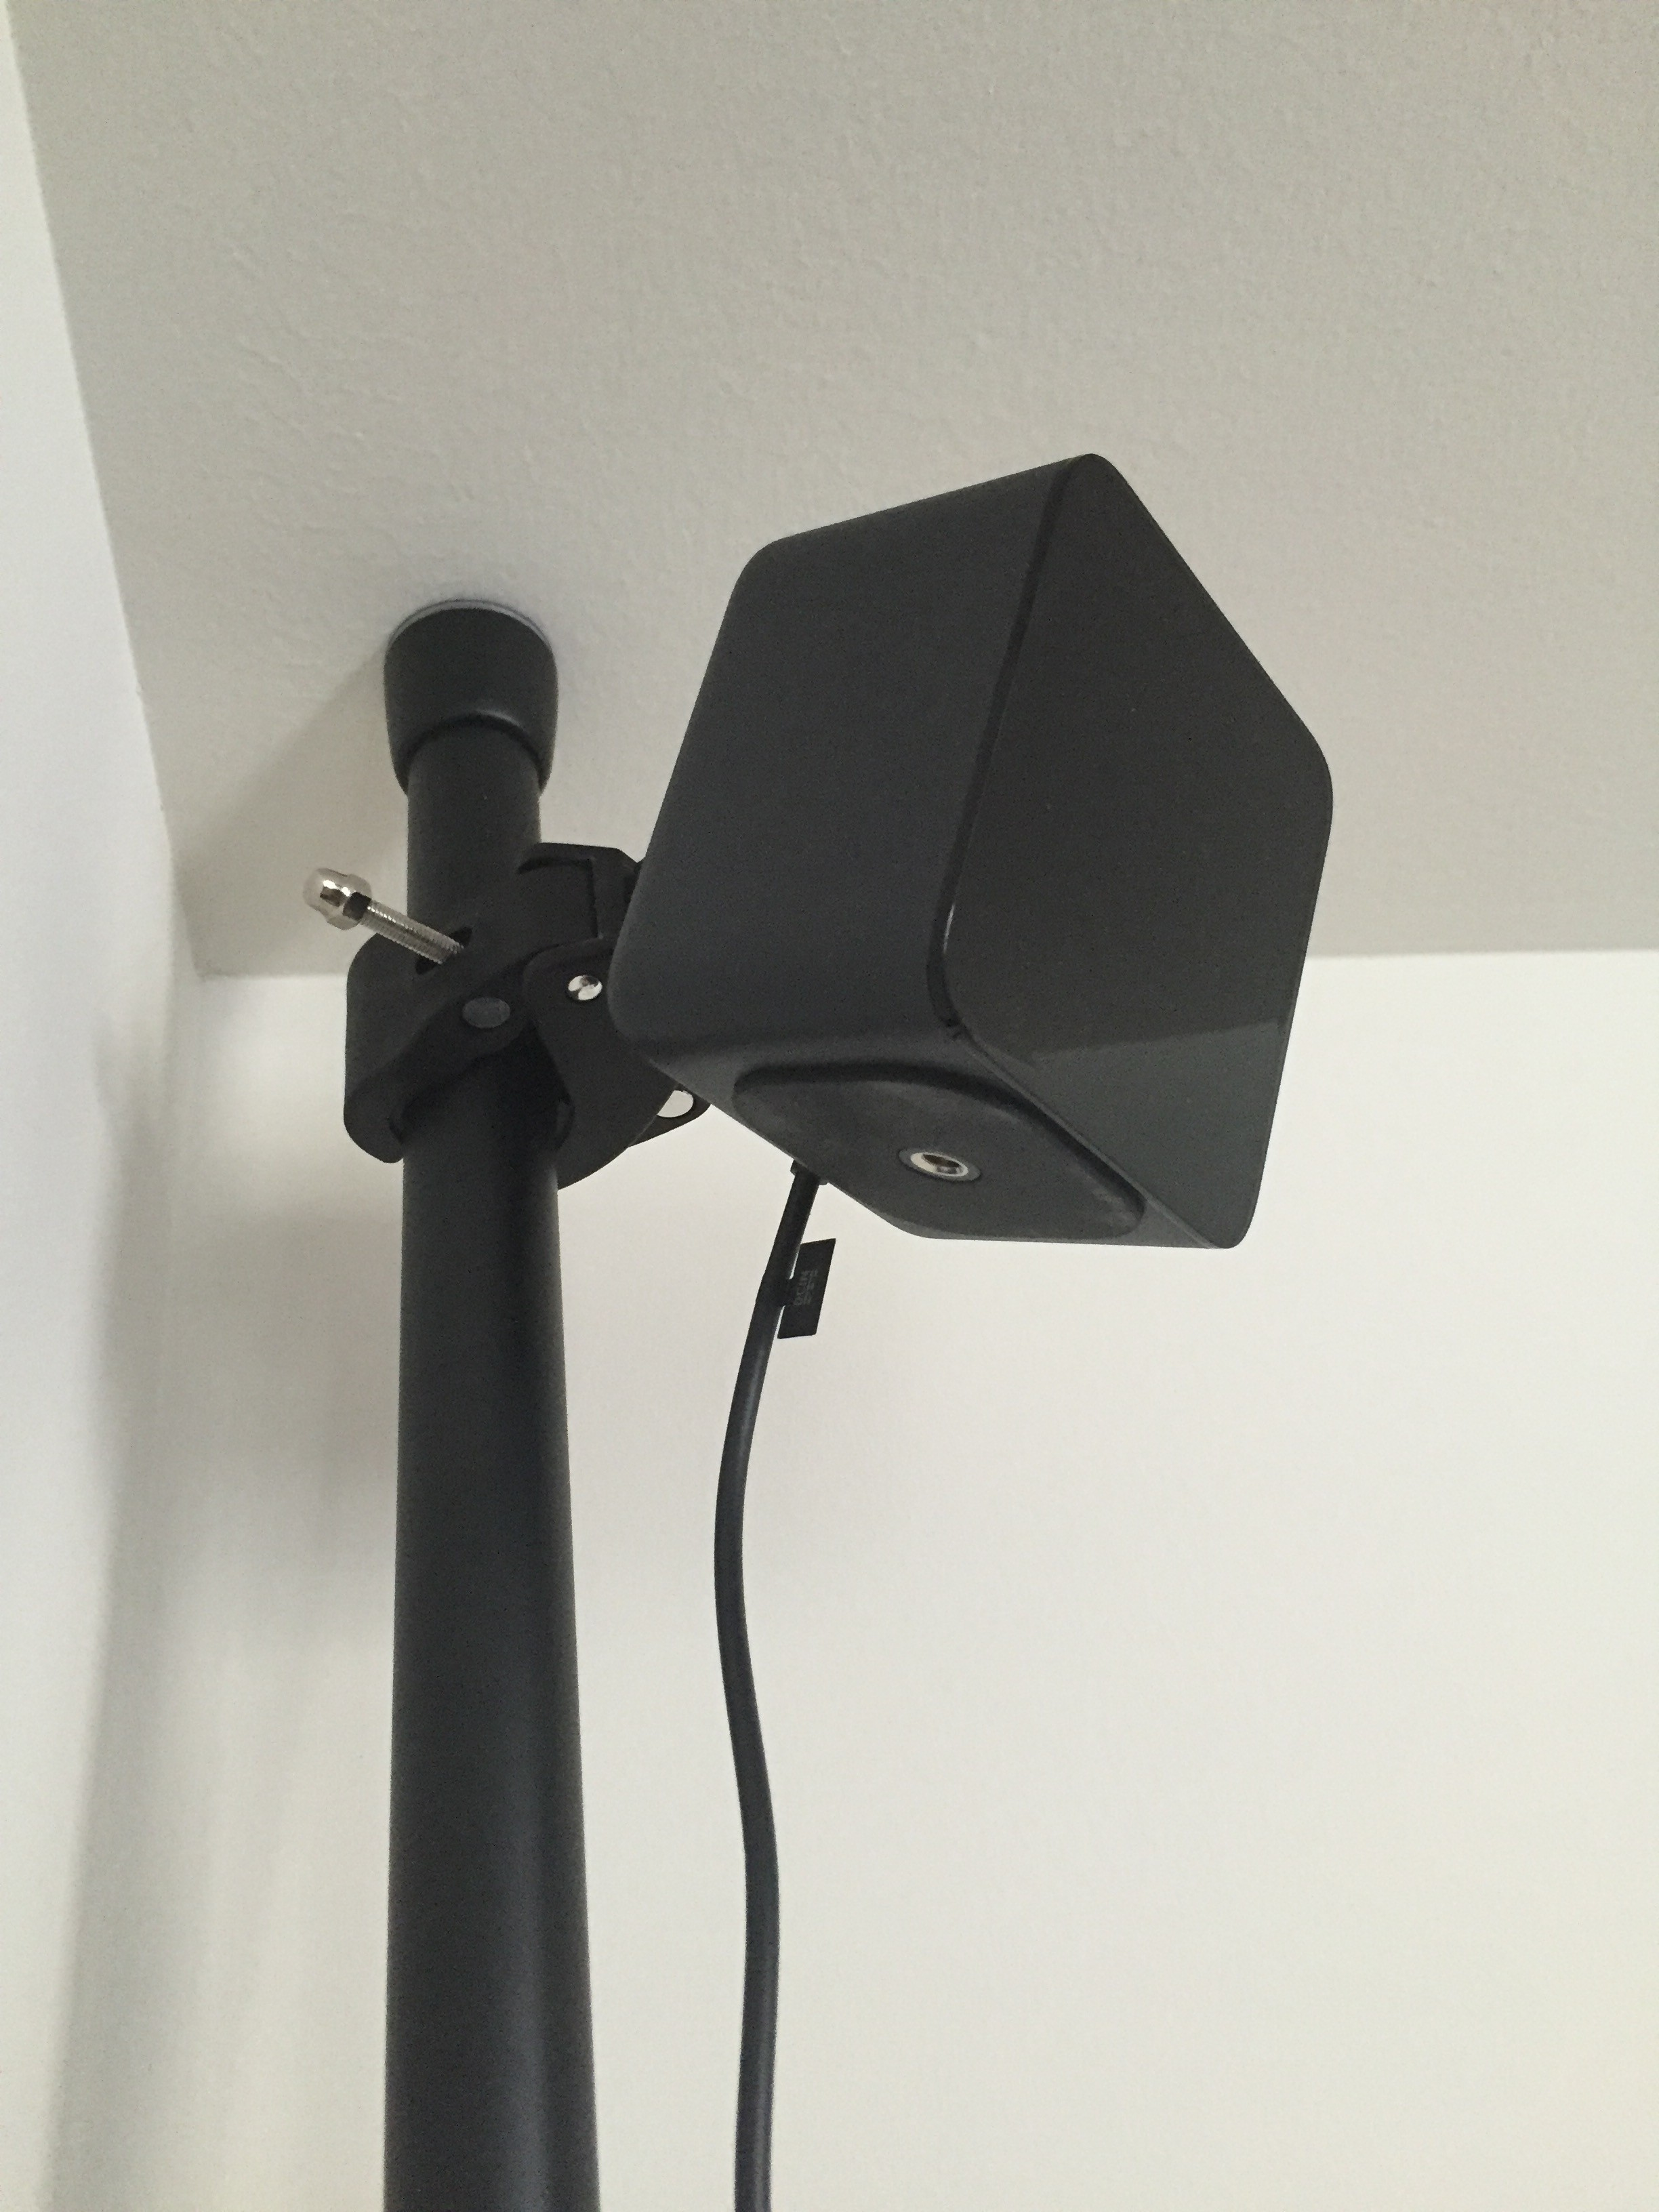 Guide To Mounting Oculus Touch Cameras